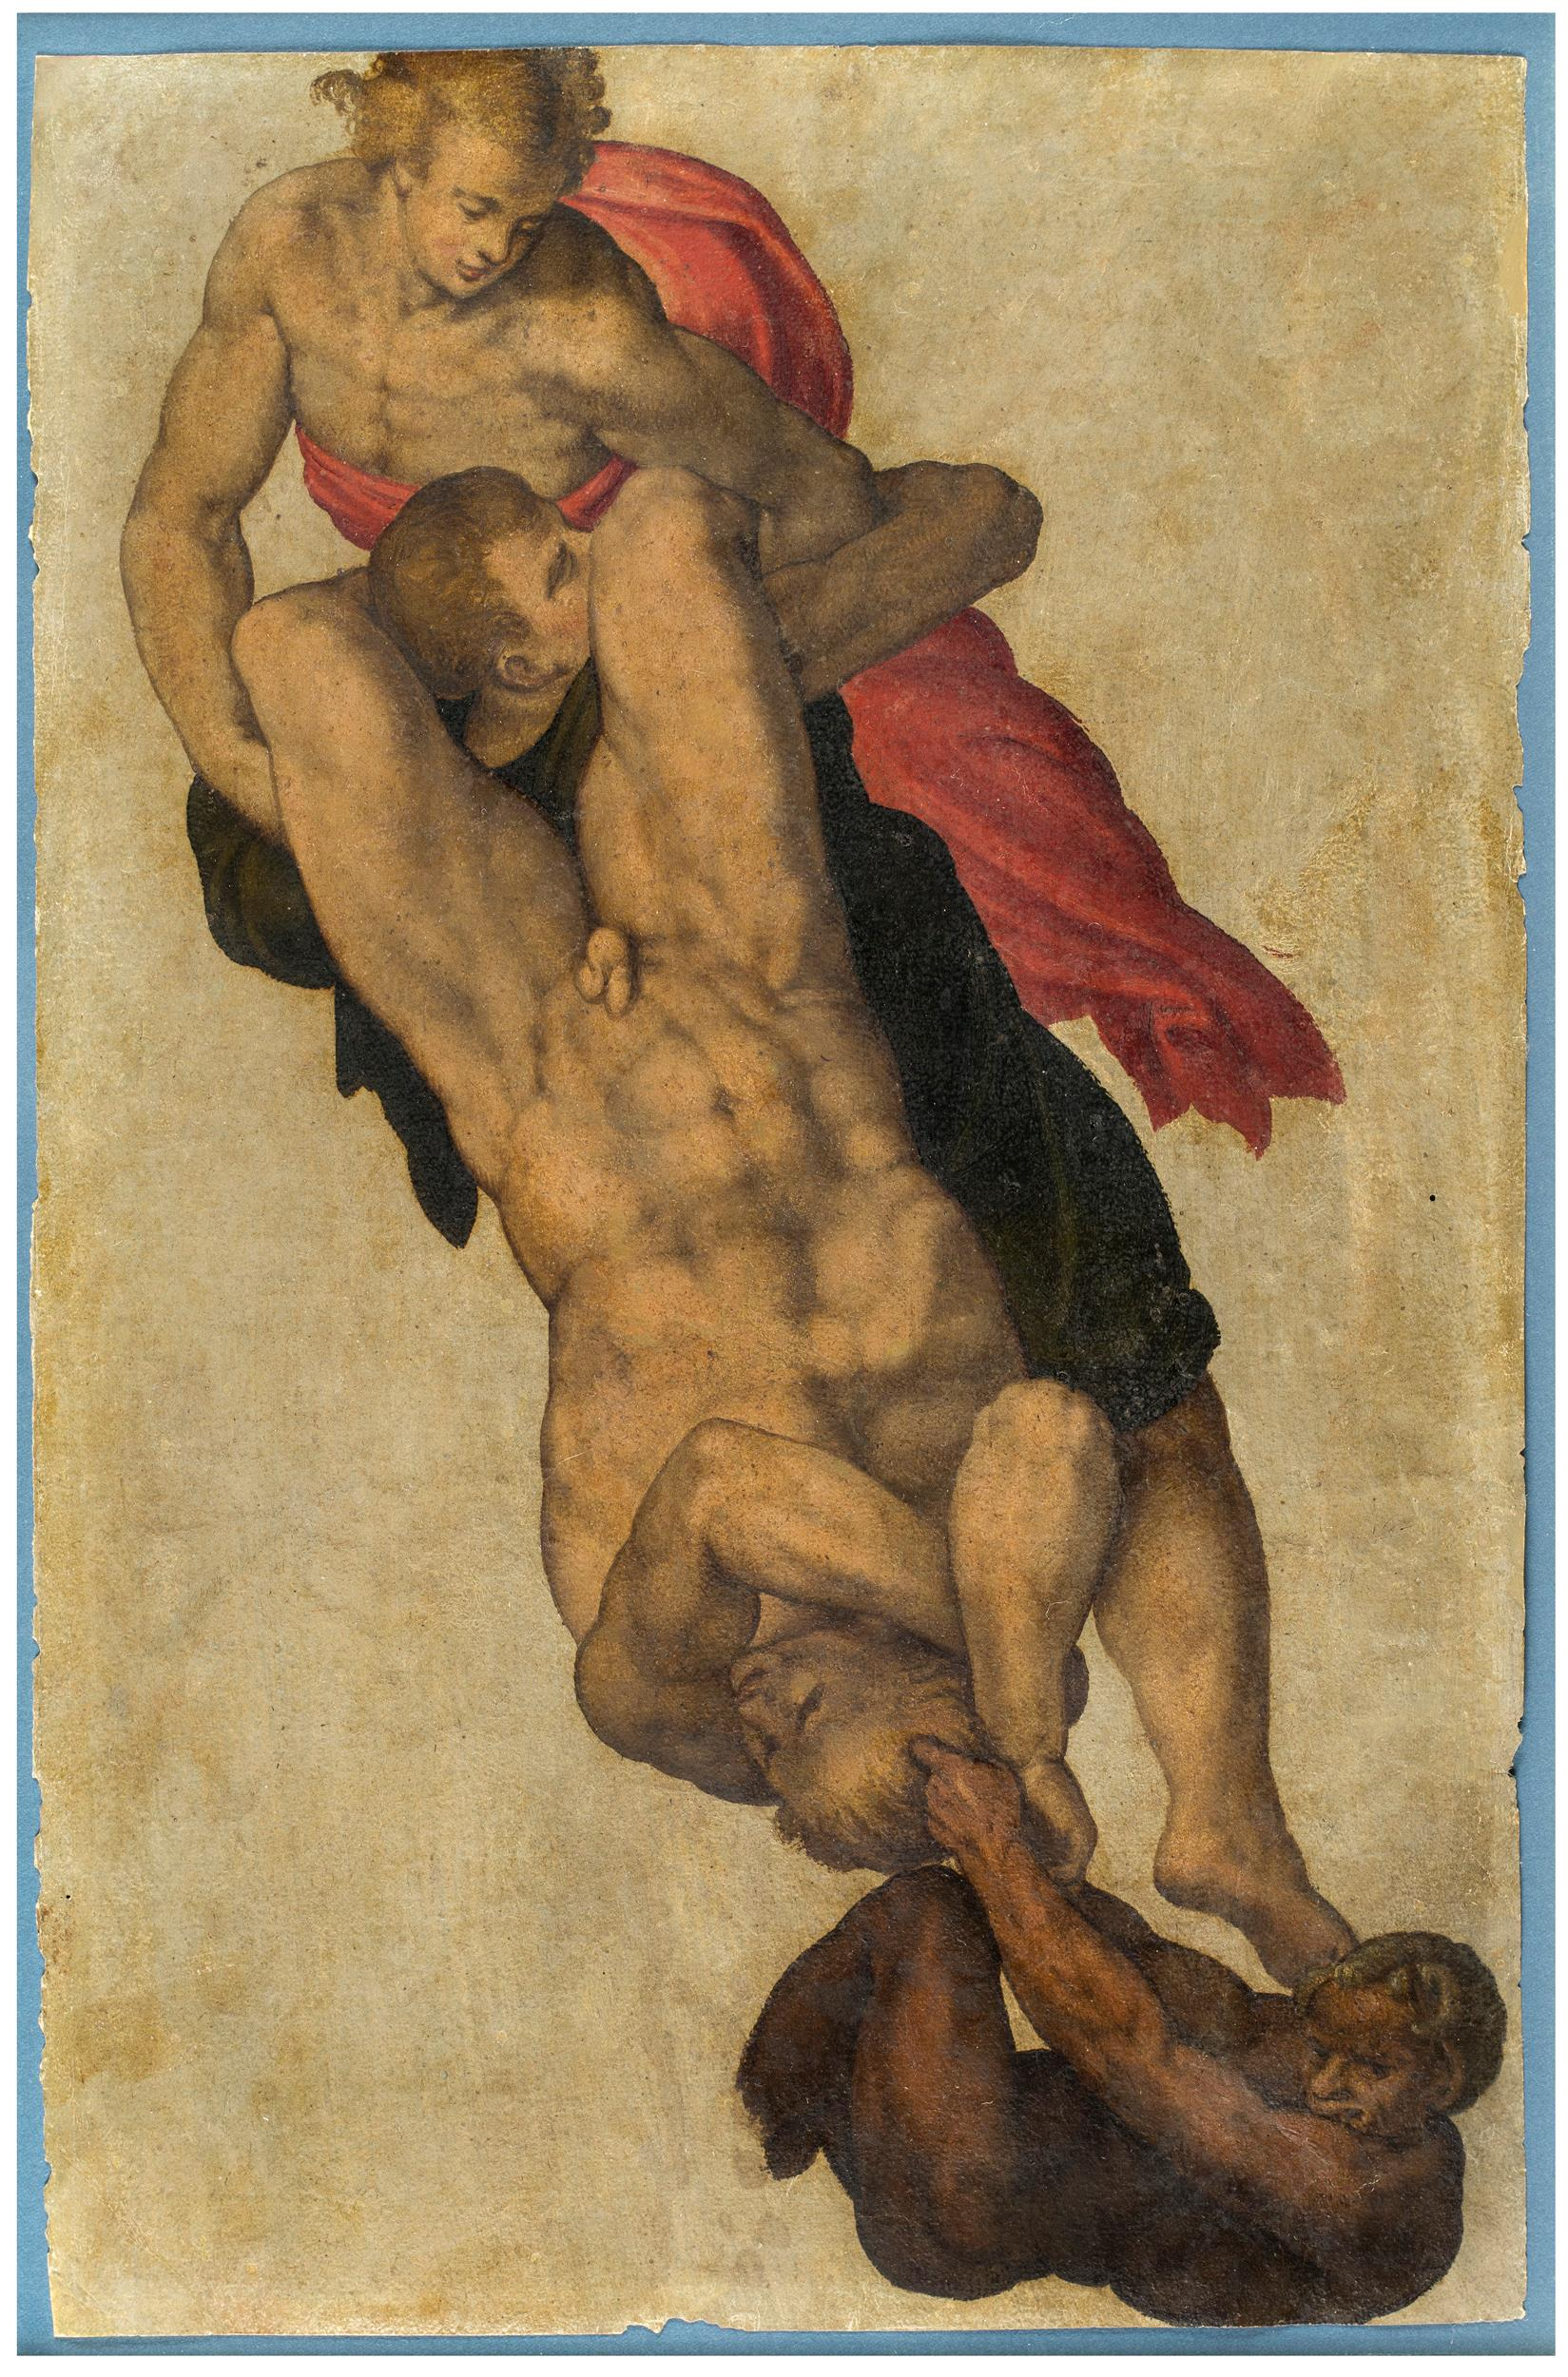 """Study after Michelangelo's """"The Last Judgment"""""""